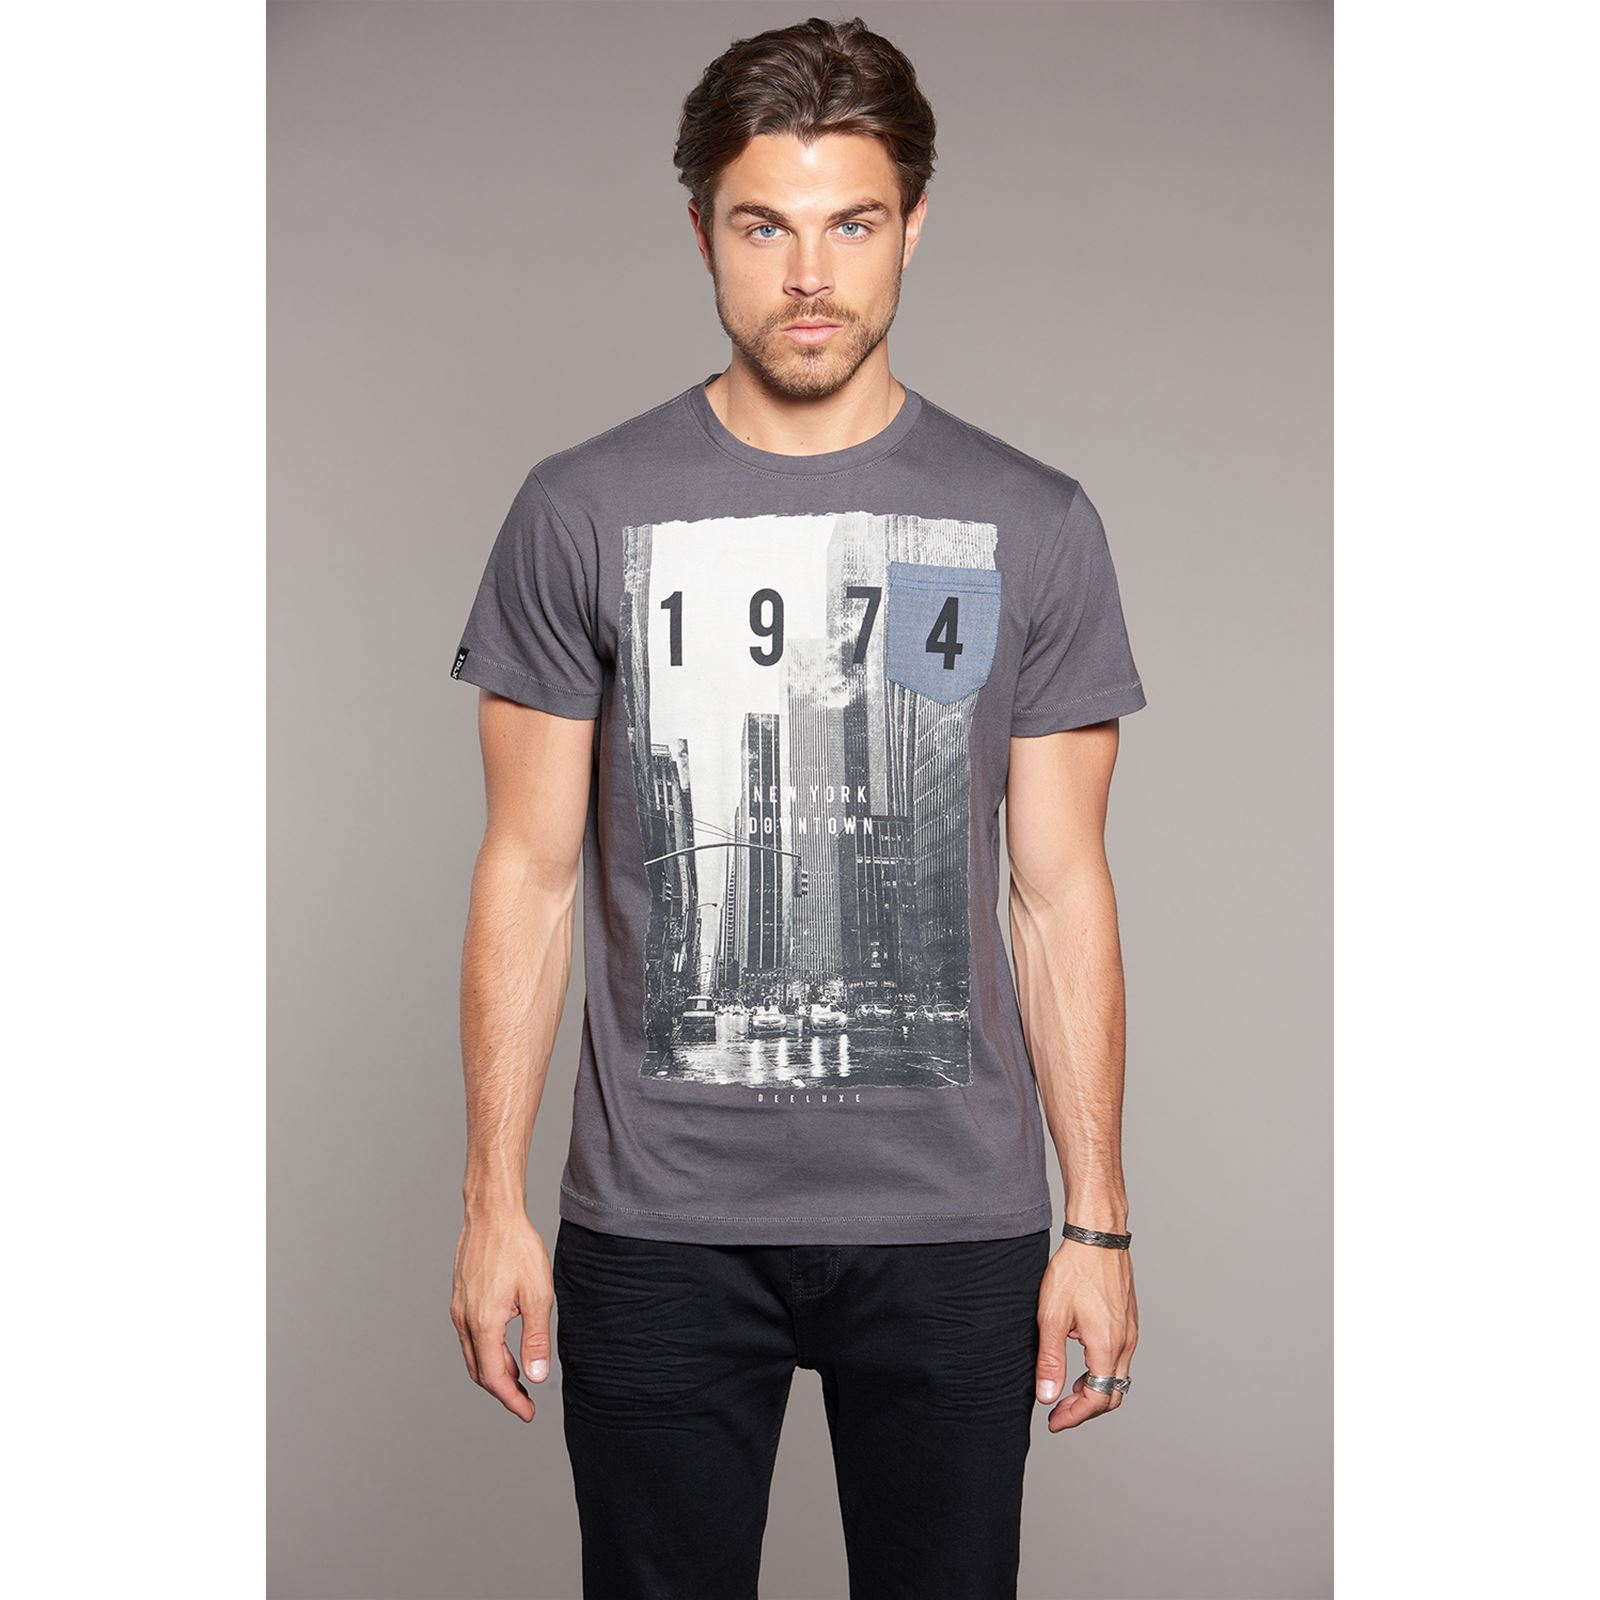 DowntownT Manches Gris Fonc Deeluxe Courtes shirt l3FT1JKc